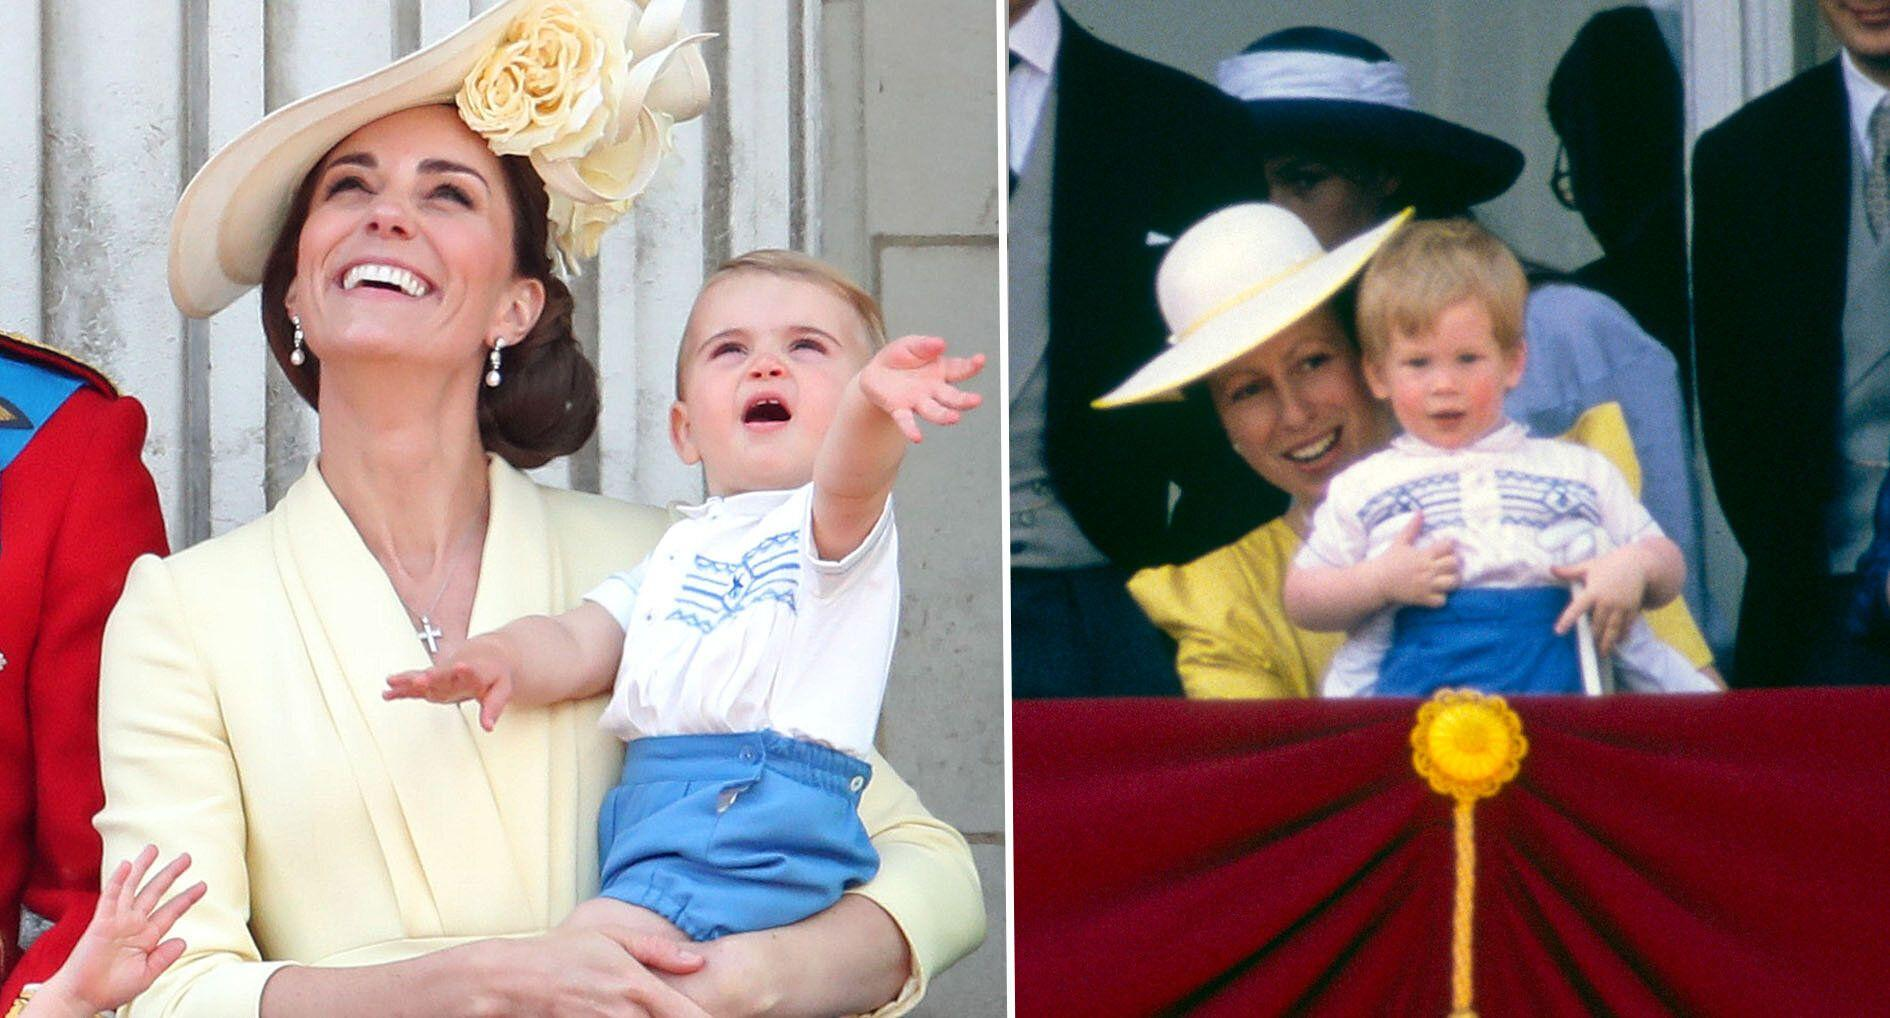 Louis wore Prince Harry's outfit from his appearance at Trooping the Colour in 1986. [Photos: Getty]